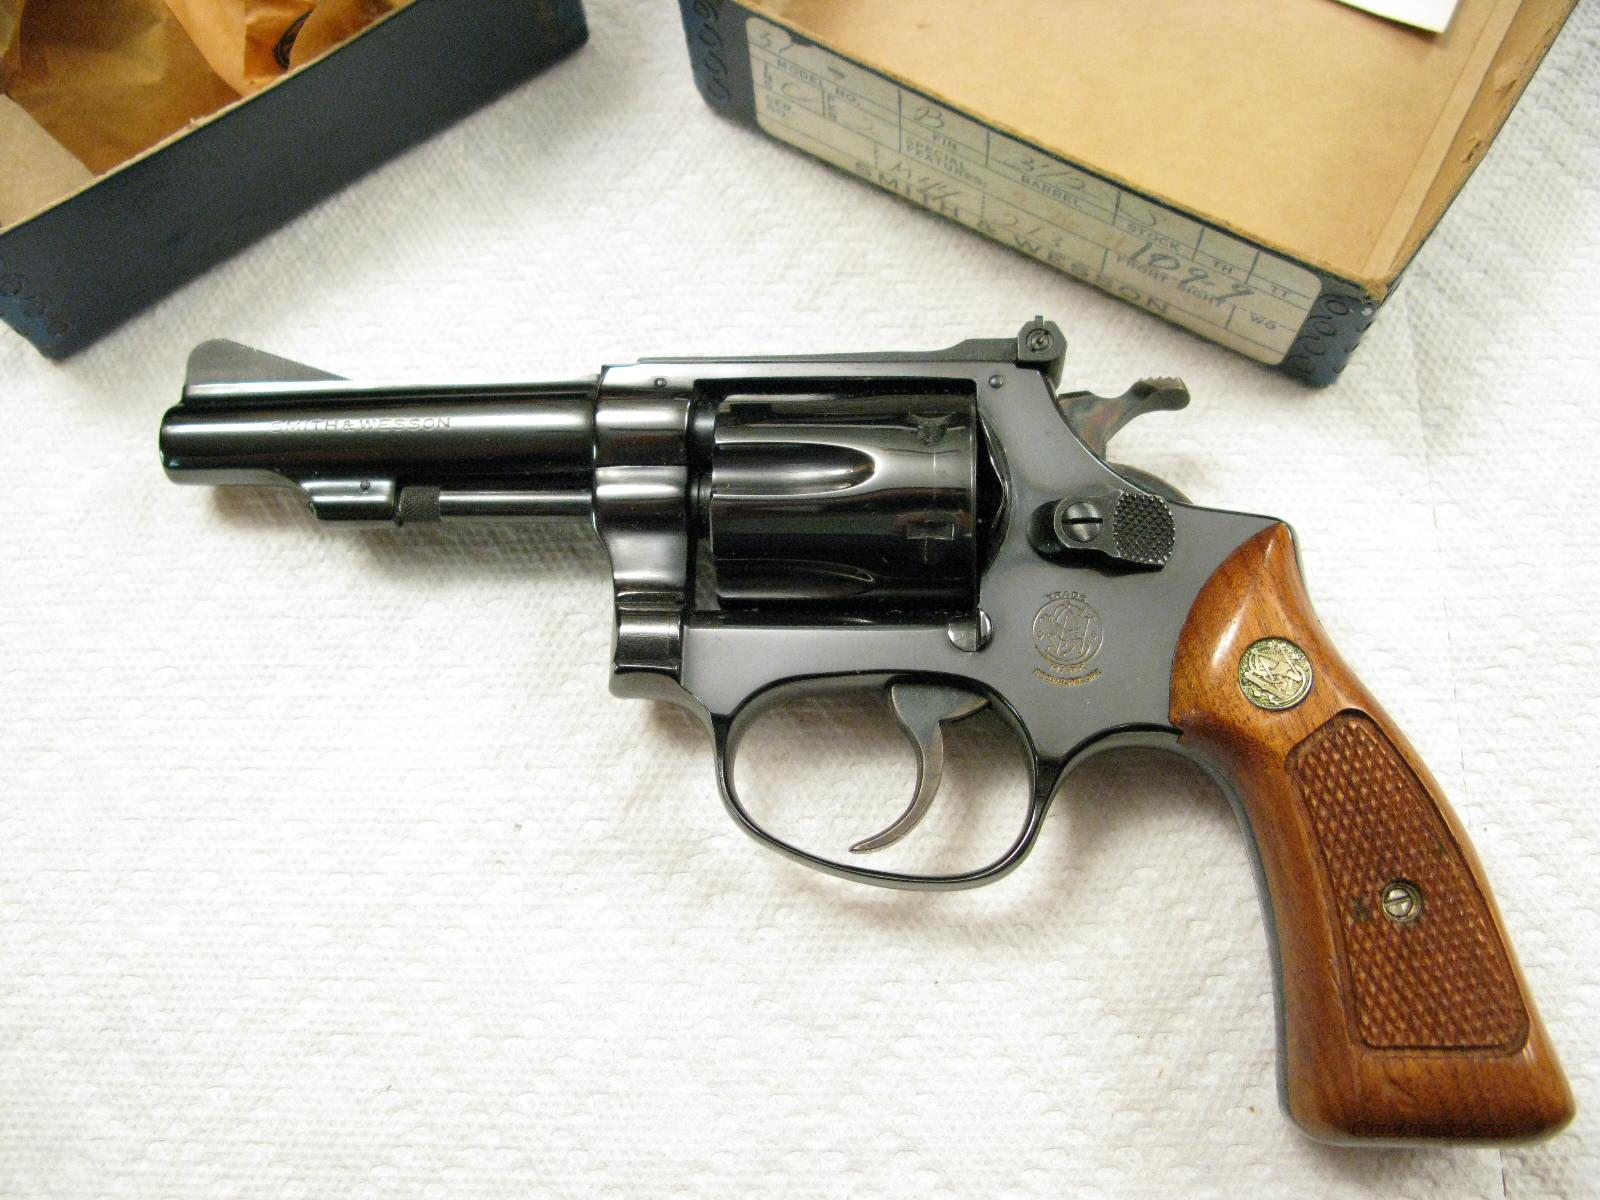 "M-51 .22 Magnum Kit gun 3 1/2"" Barrel New In Box  Guns > Pistols > Smith & Wesson Revolvers > Full Frame Revolver"